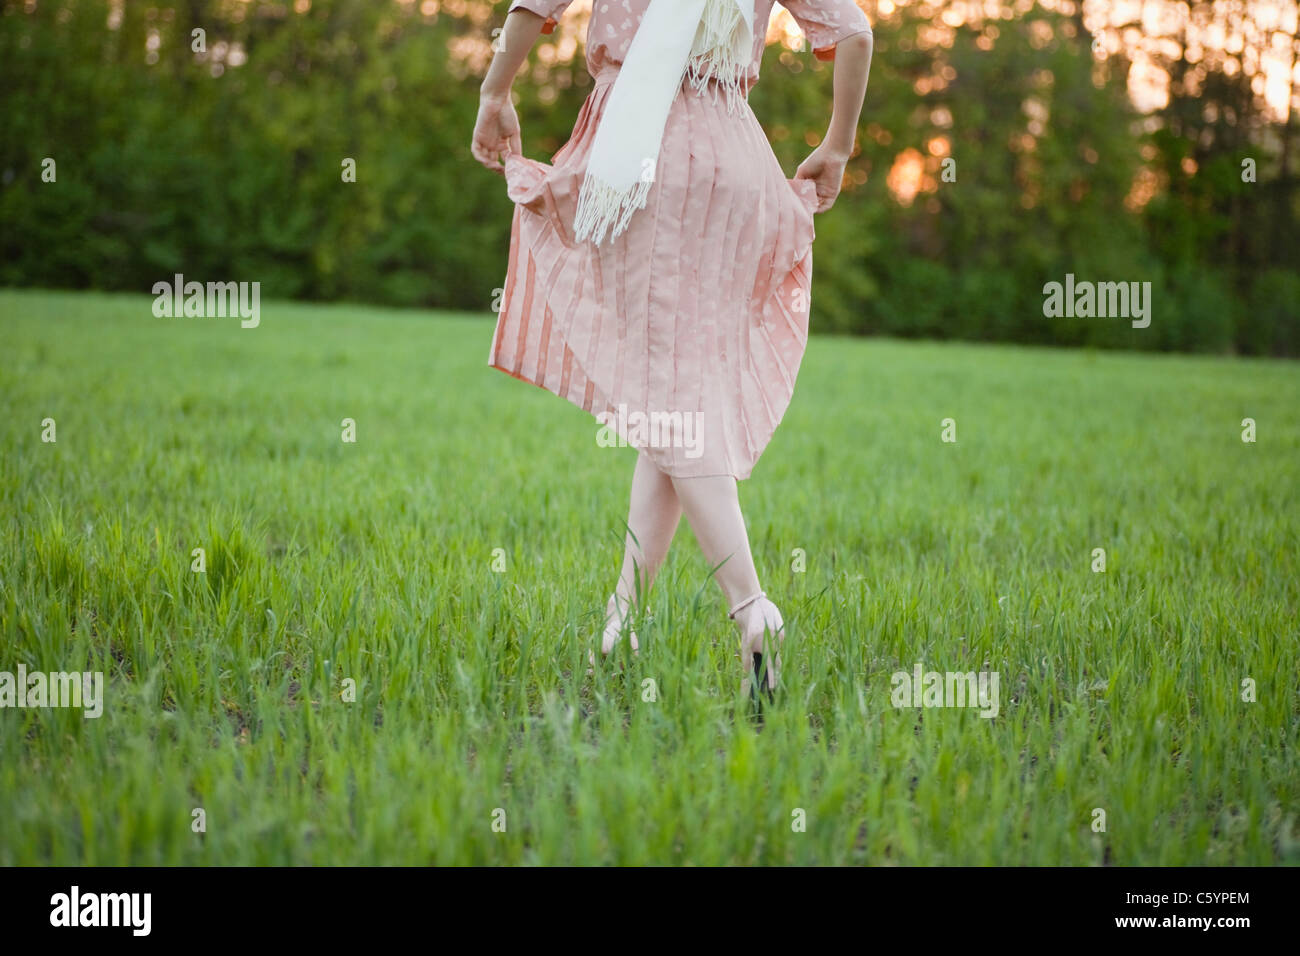 Russia, Voronezh, woman in dress running across meadow - Stock Image